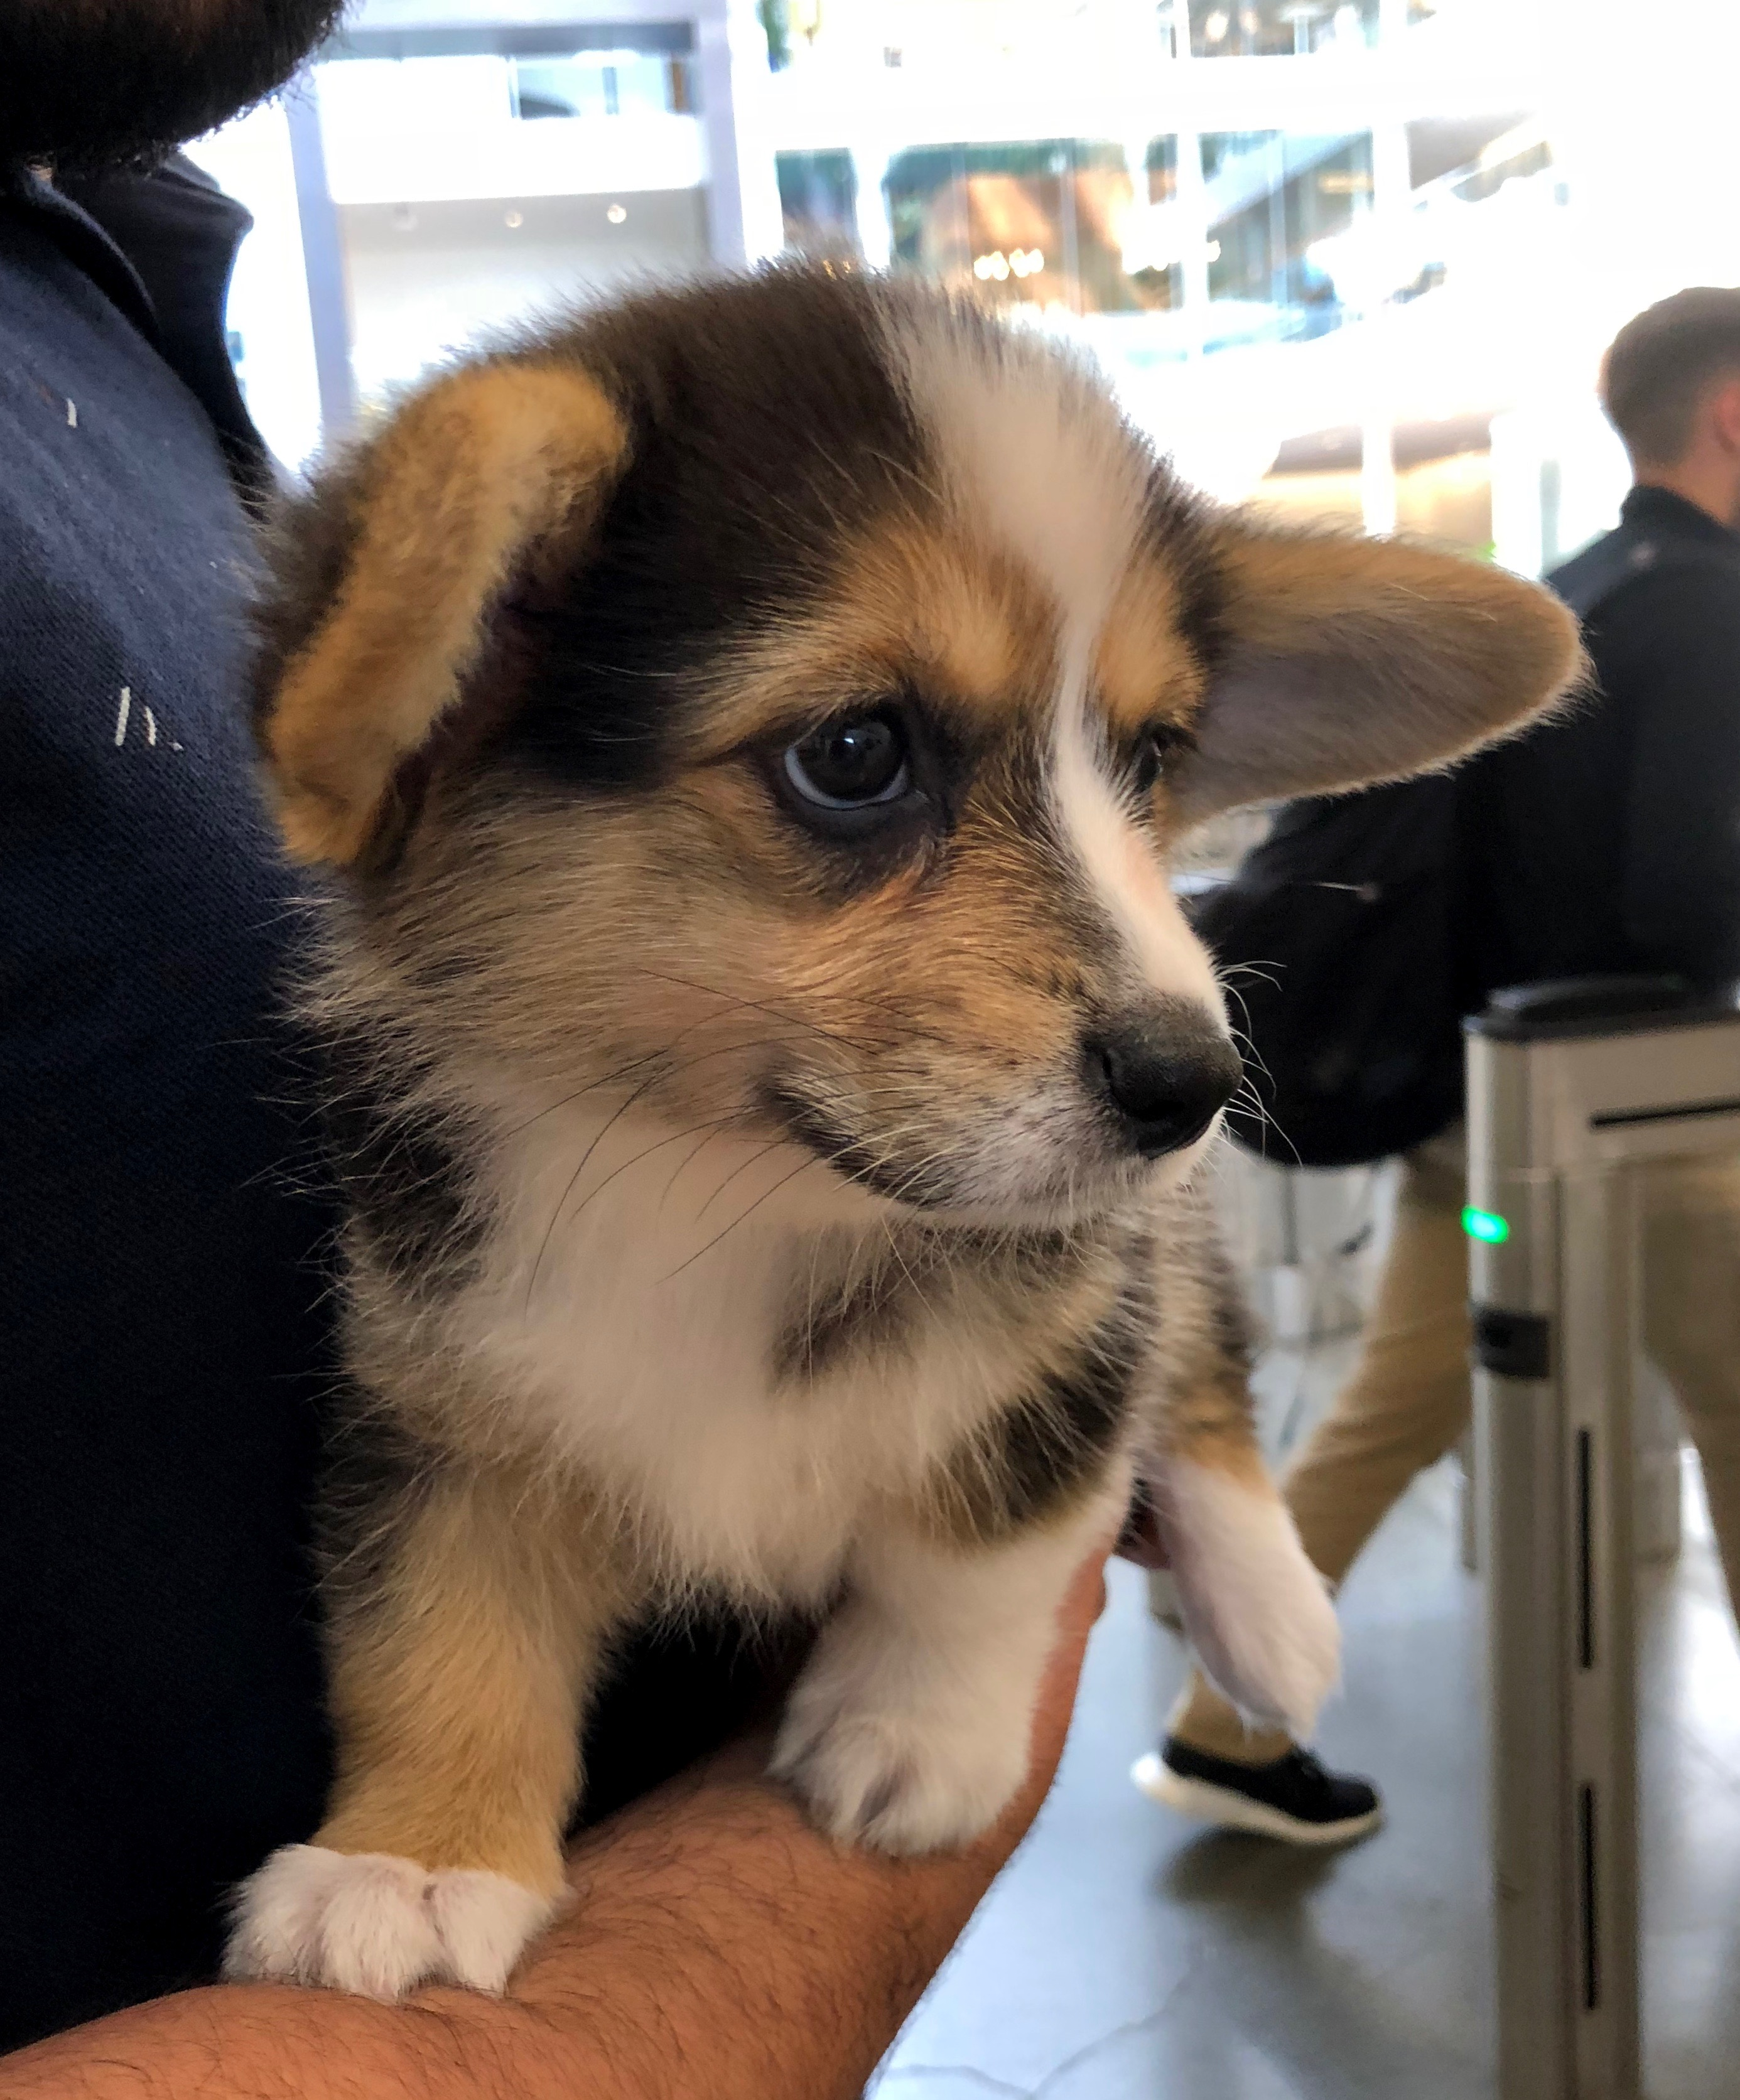 Ridiculously Adorable Pembroke Welsh Corgi Puppy In Man's Arms